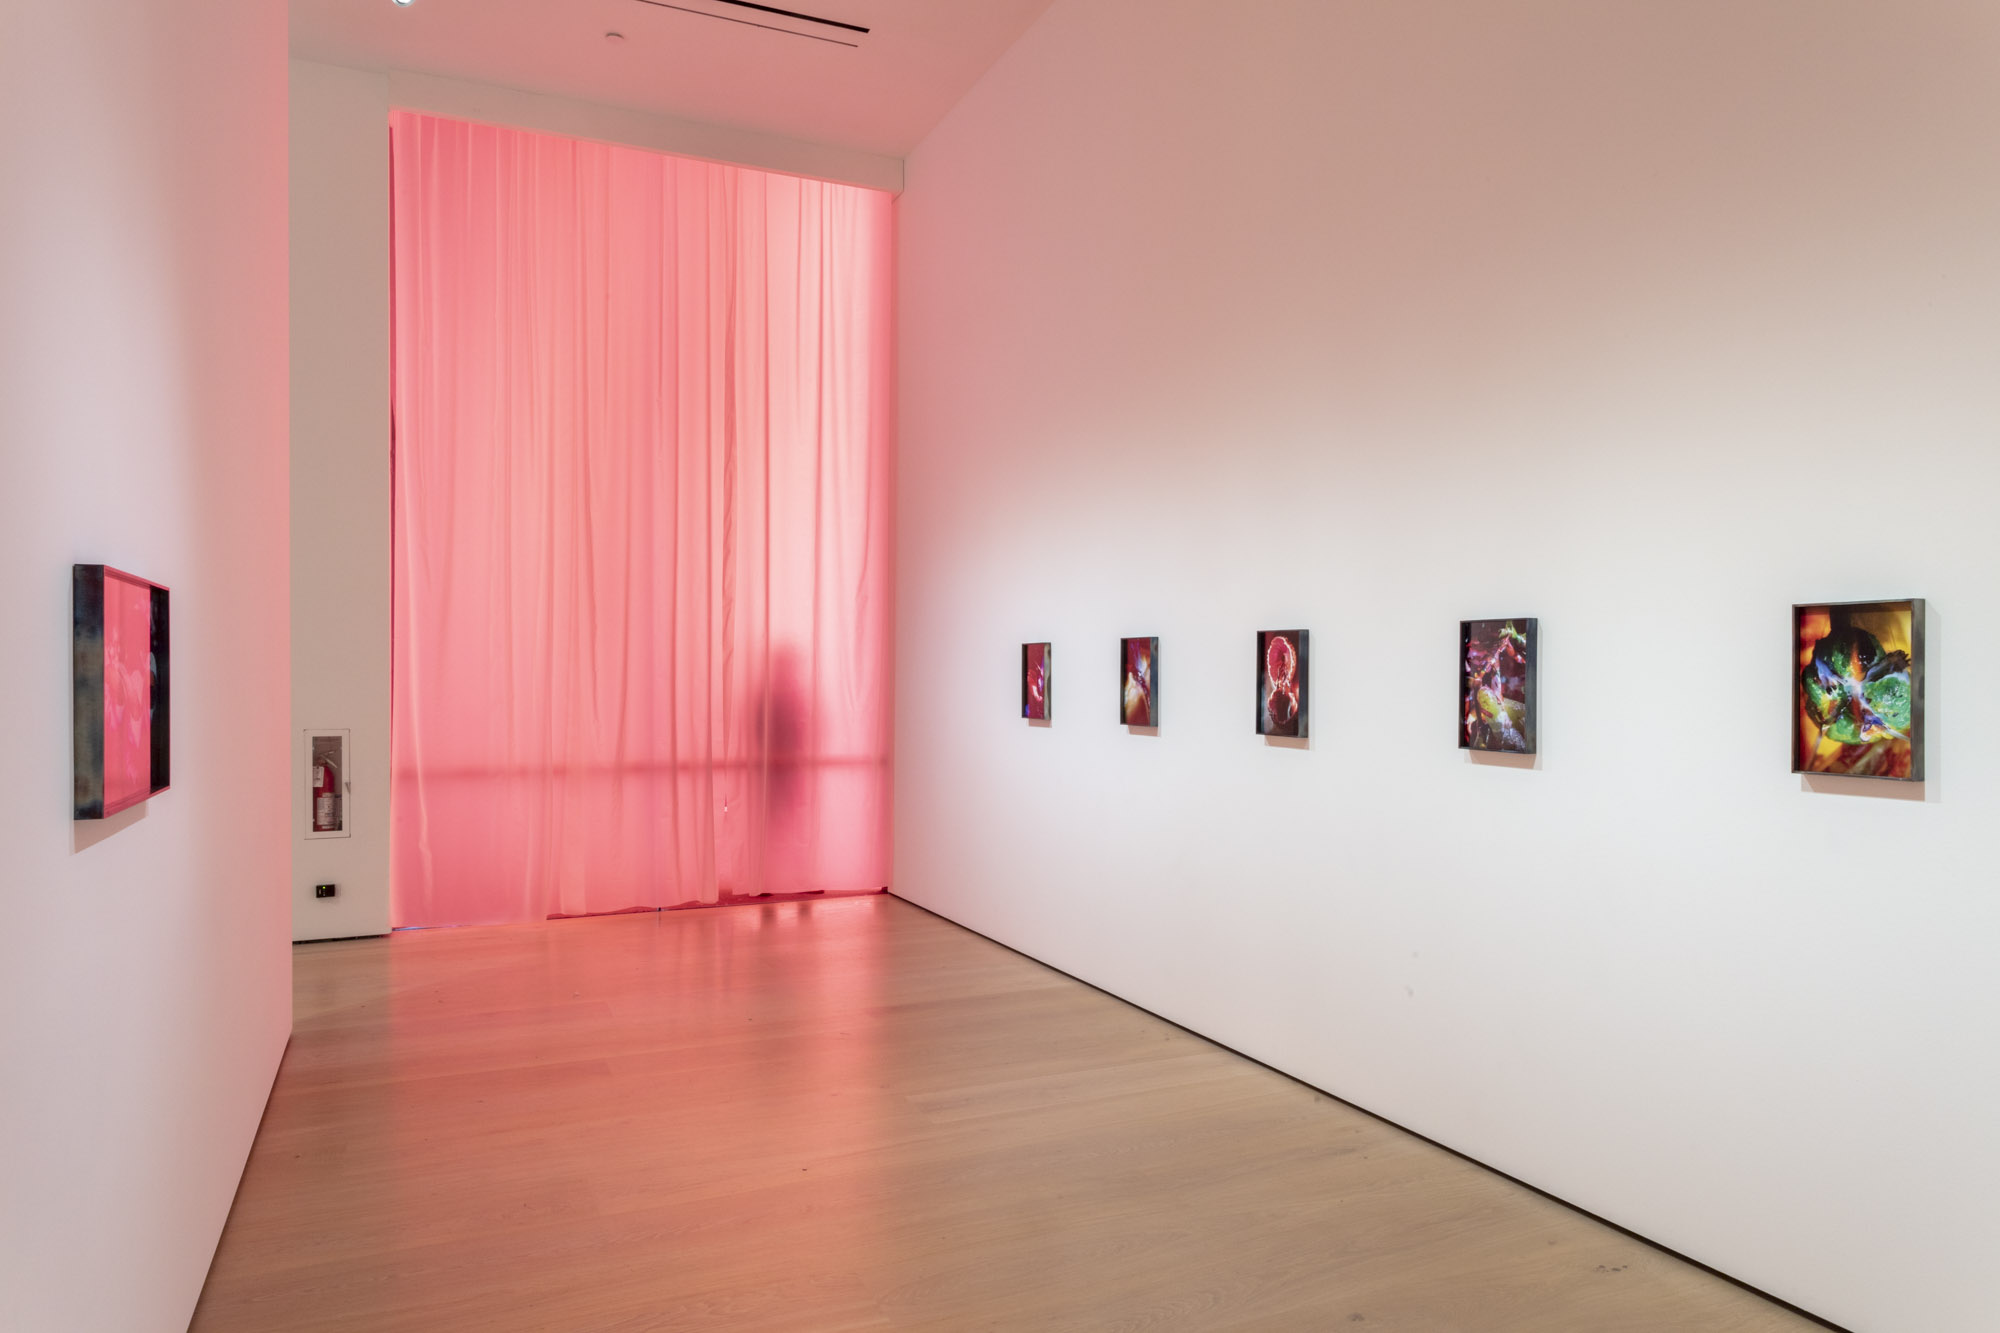 """An installation view of Diane Severin Nguyen's work at """"Made in L.A. 2020: a version."""" at Hammer Museum, Los Angeles. 